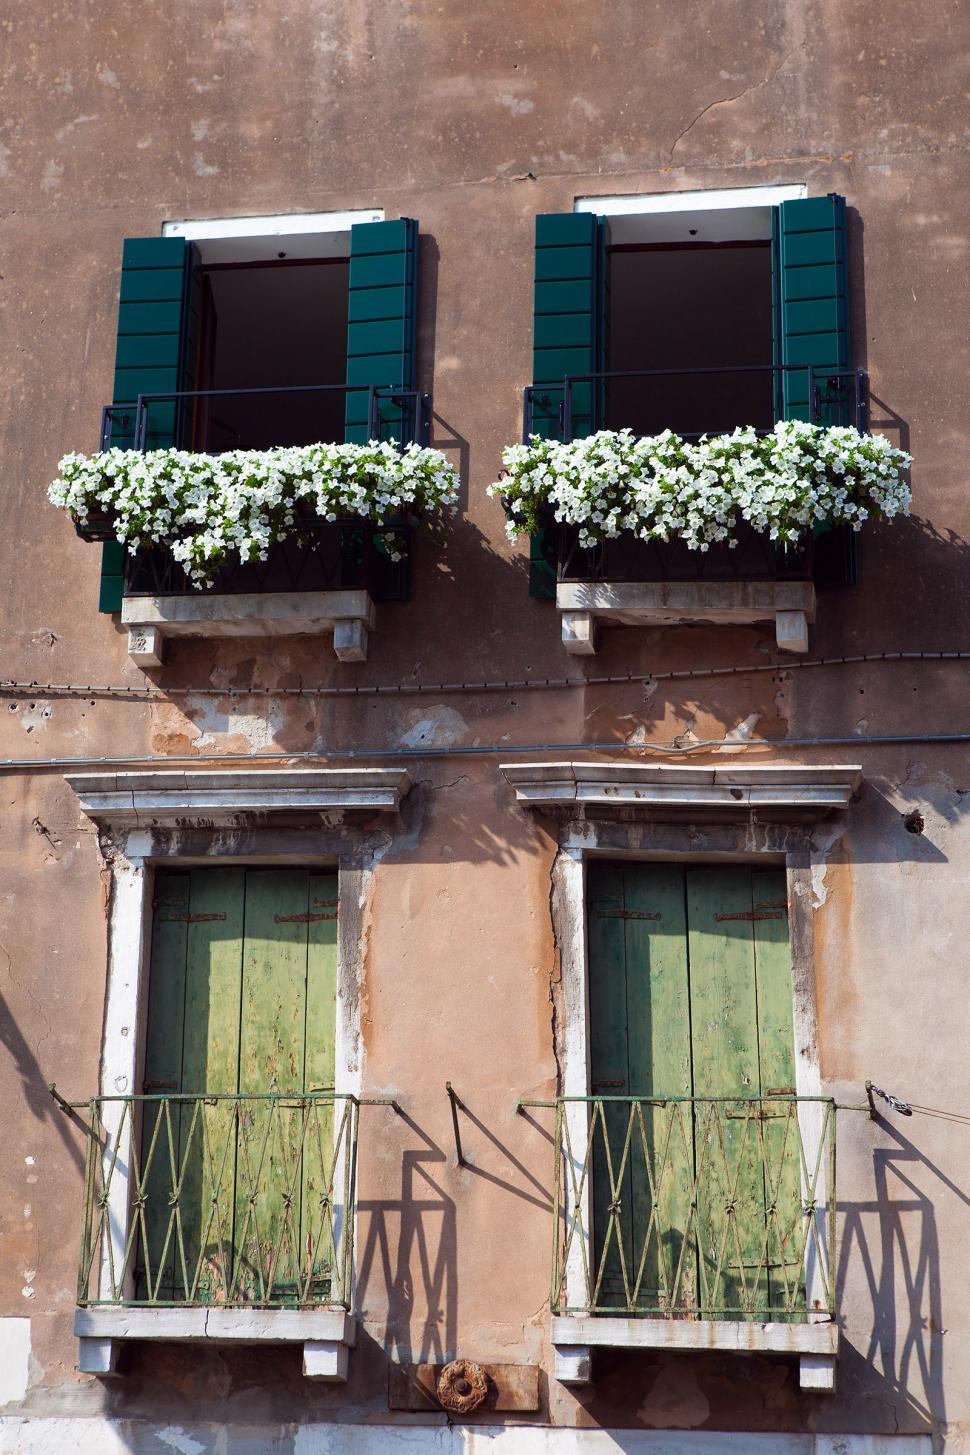 Download Free Stock Photo of Venice